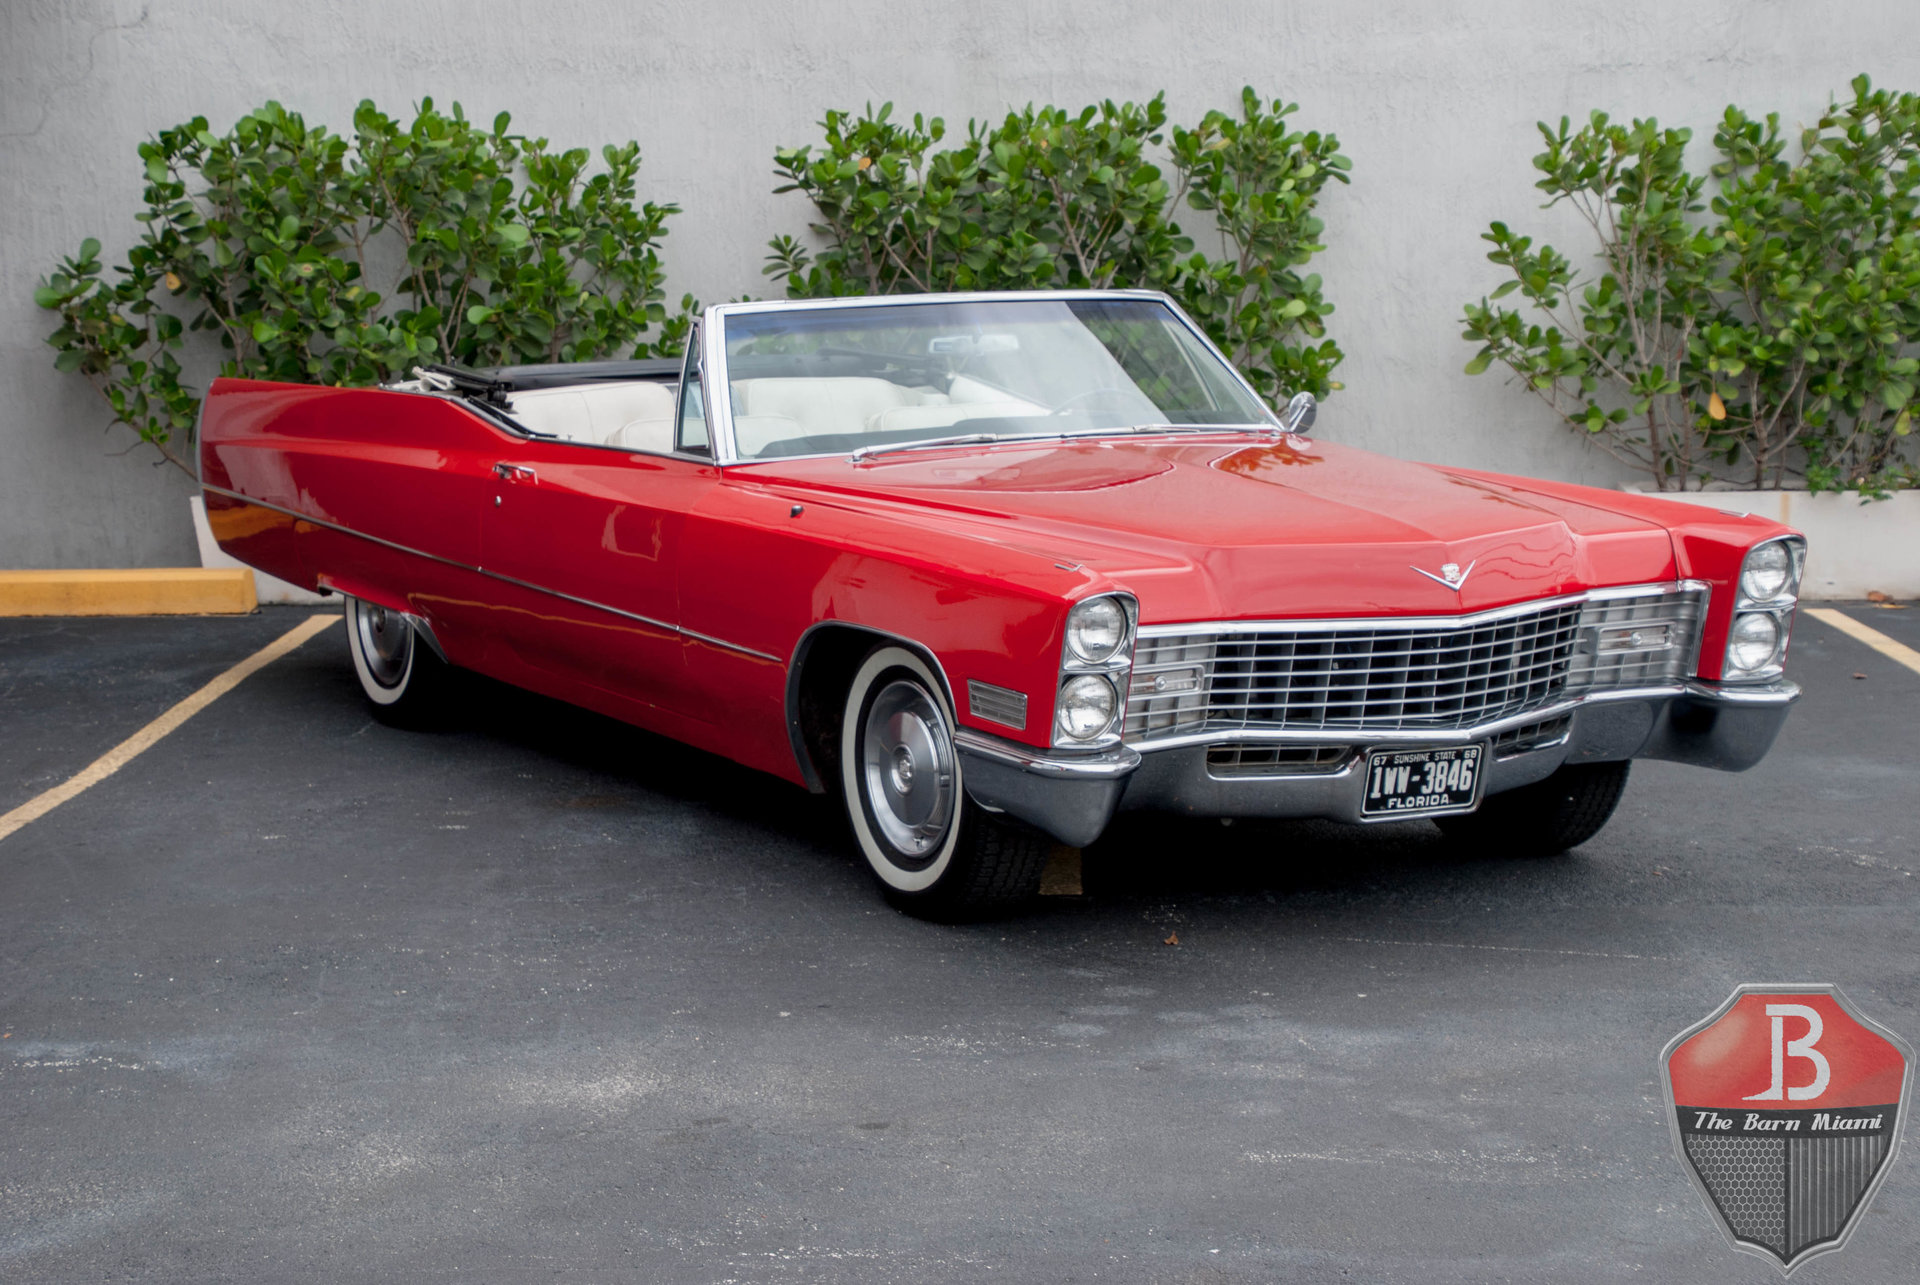 1967 cadillac deville the barn miami. Black Bedroom Furniture Sets. Home Design Ideas